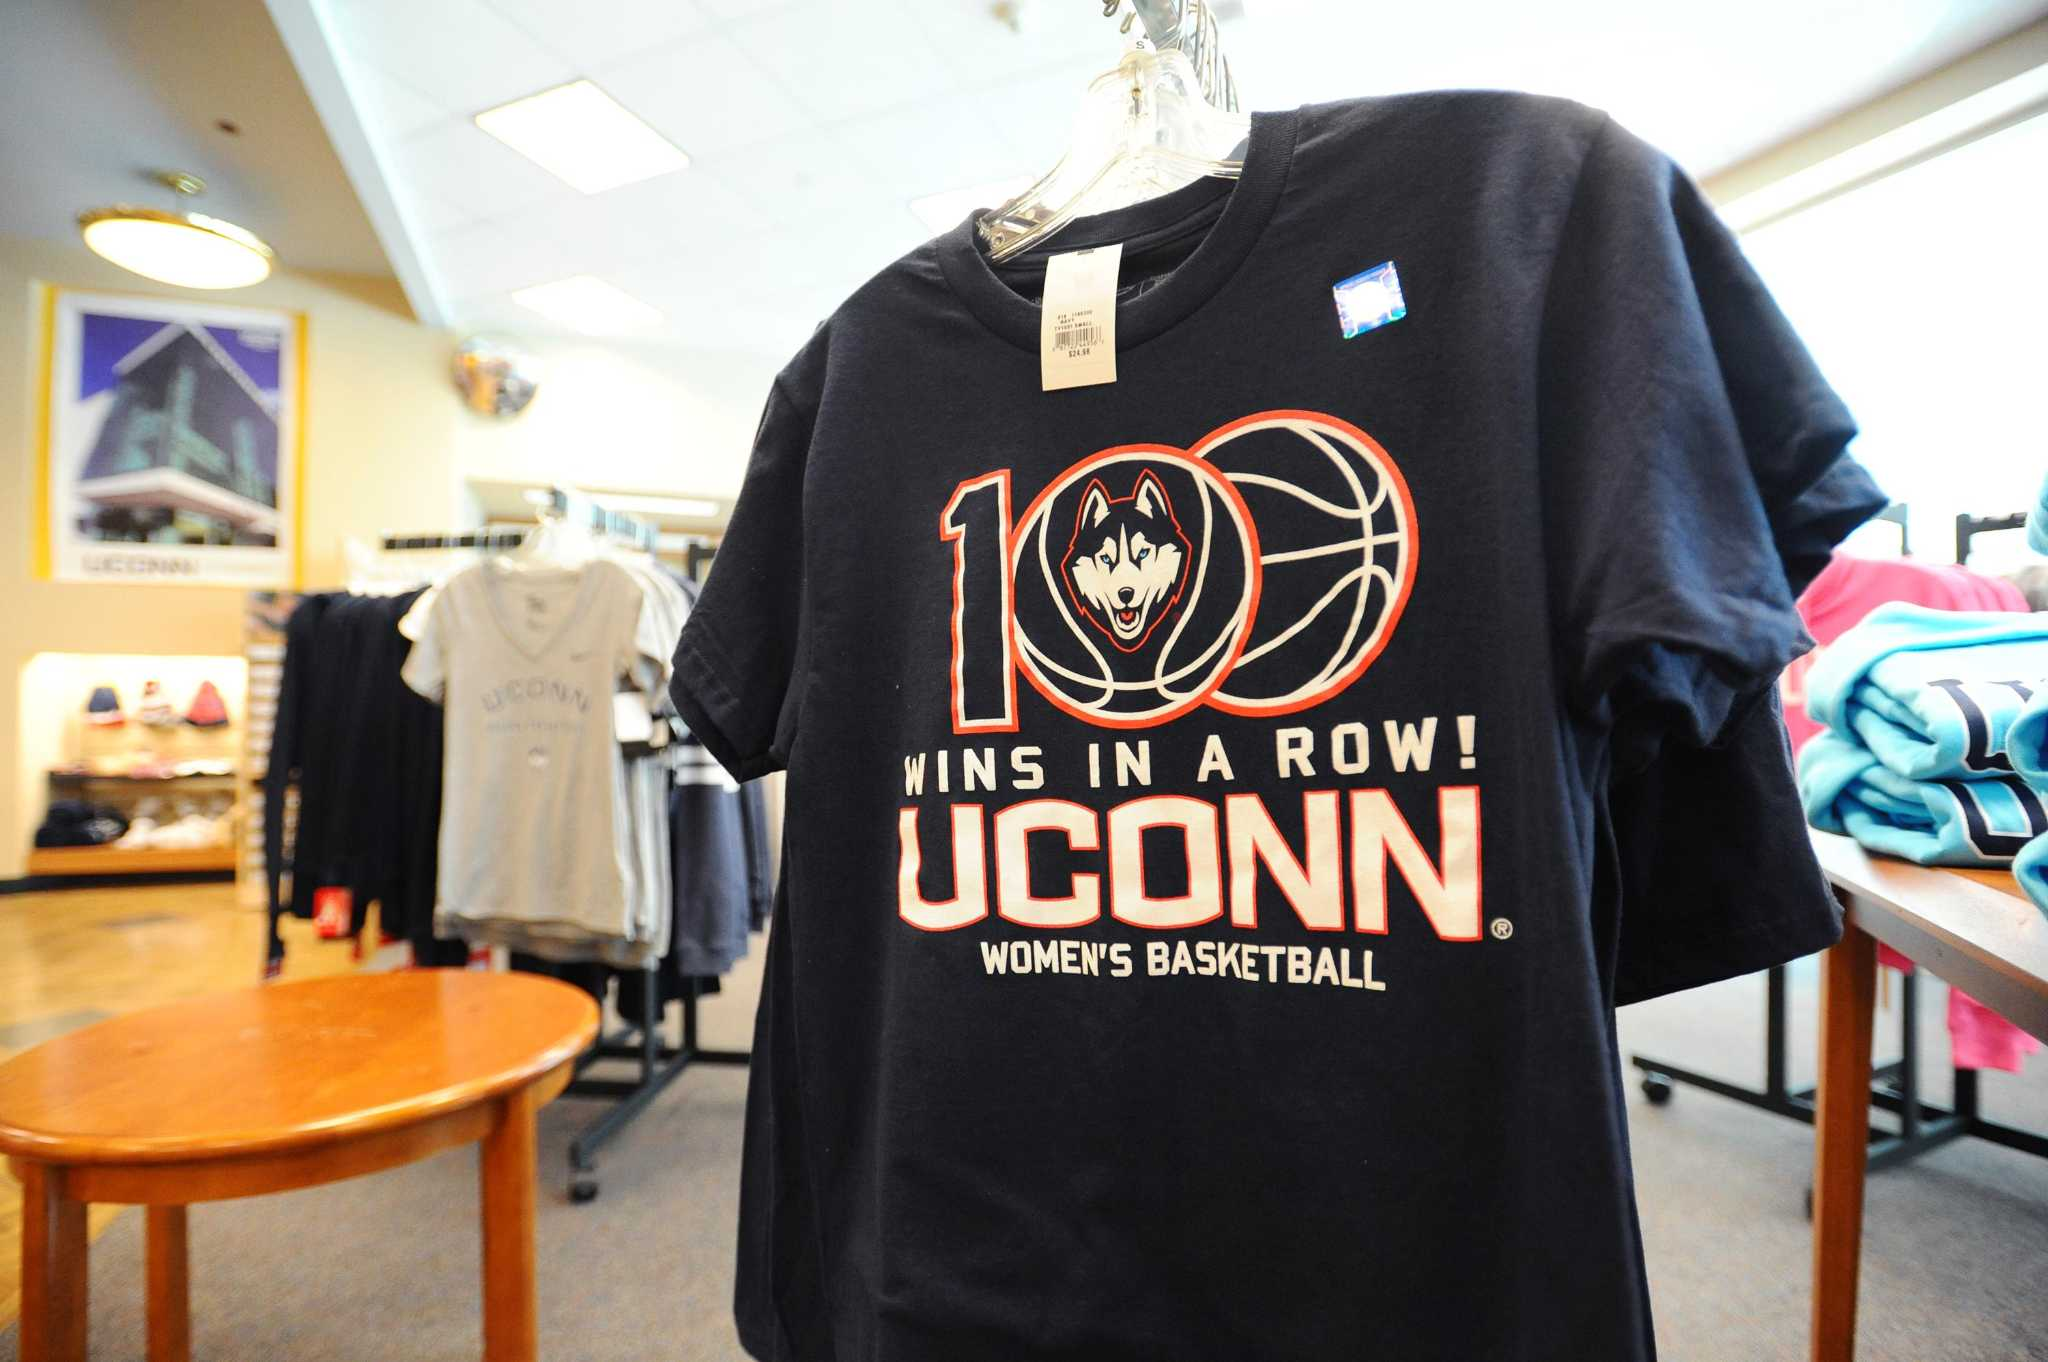 Fans Go To Uconn To Get The Best Selling Gear Memorabilia